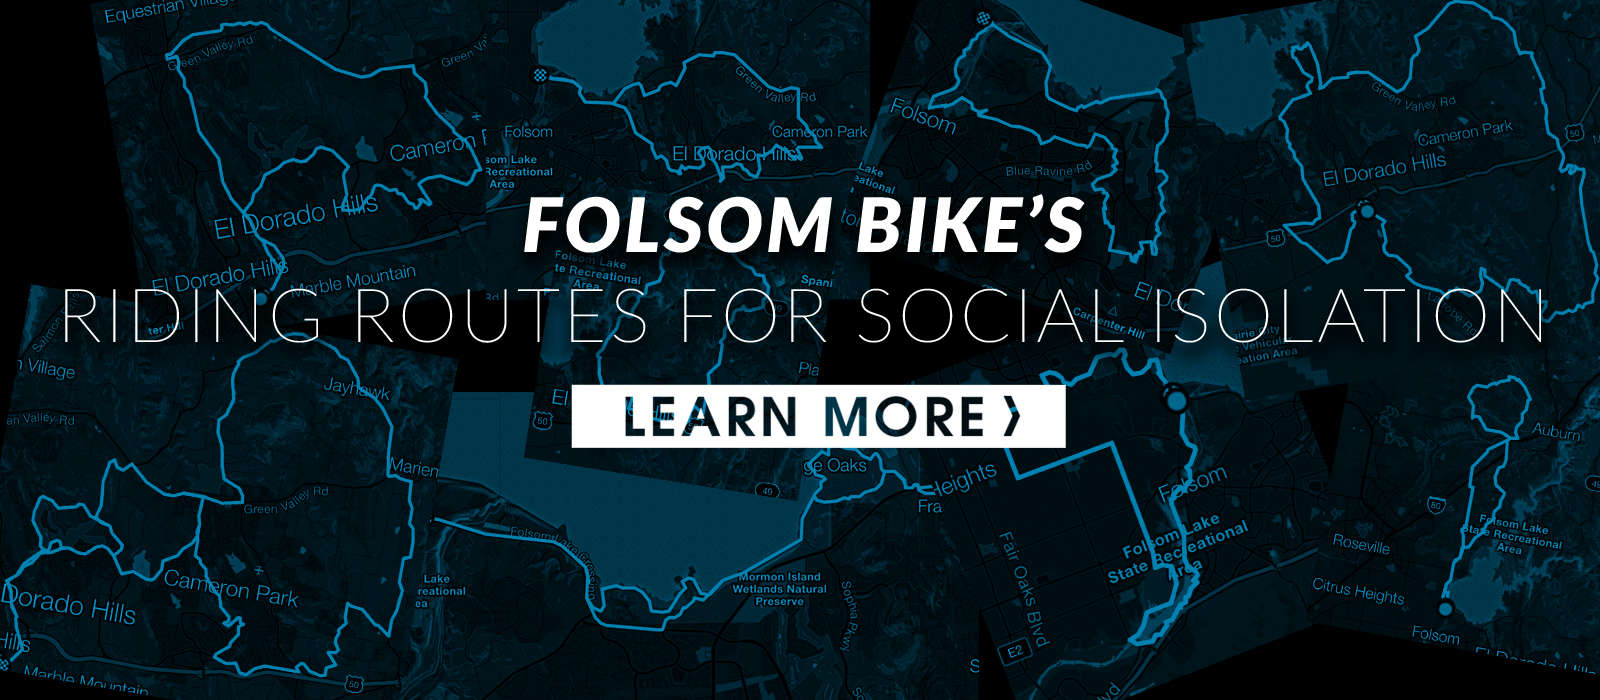 Routes for Social Isolation riding